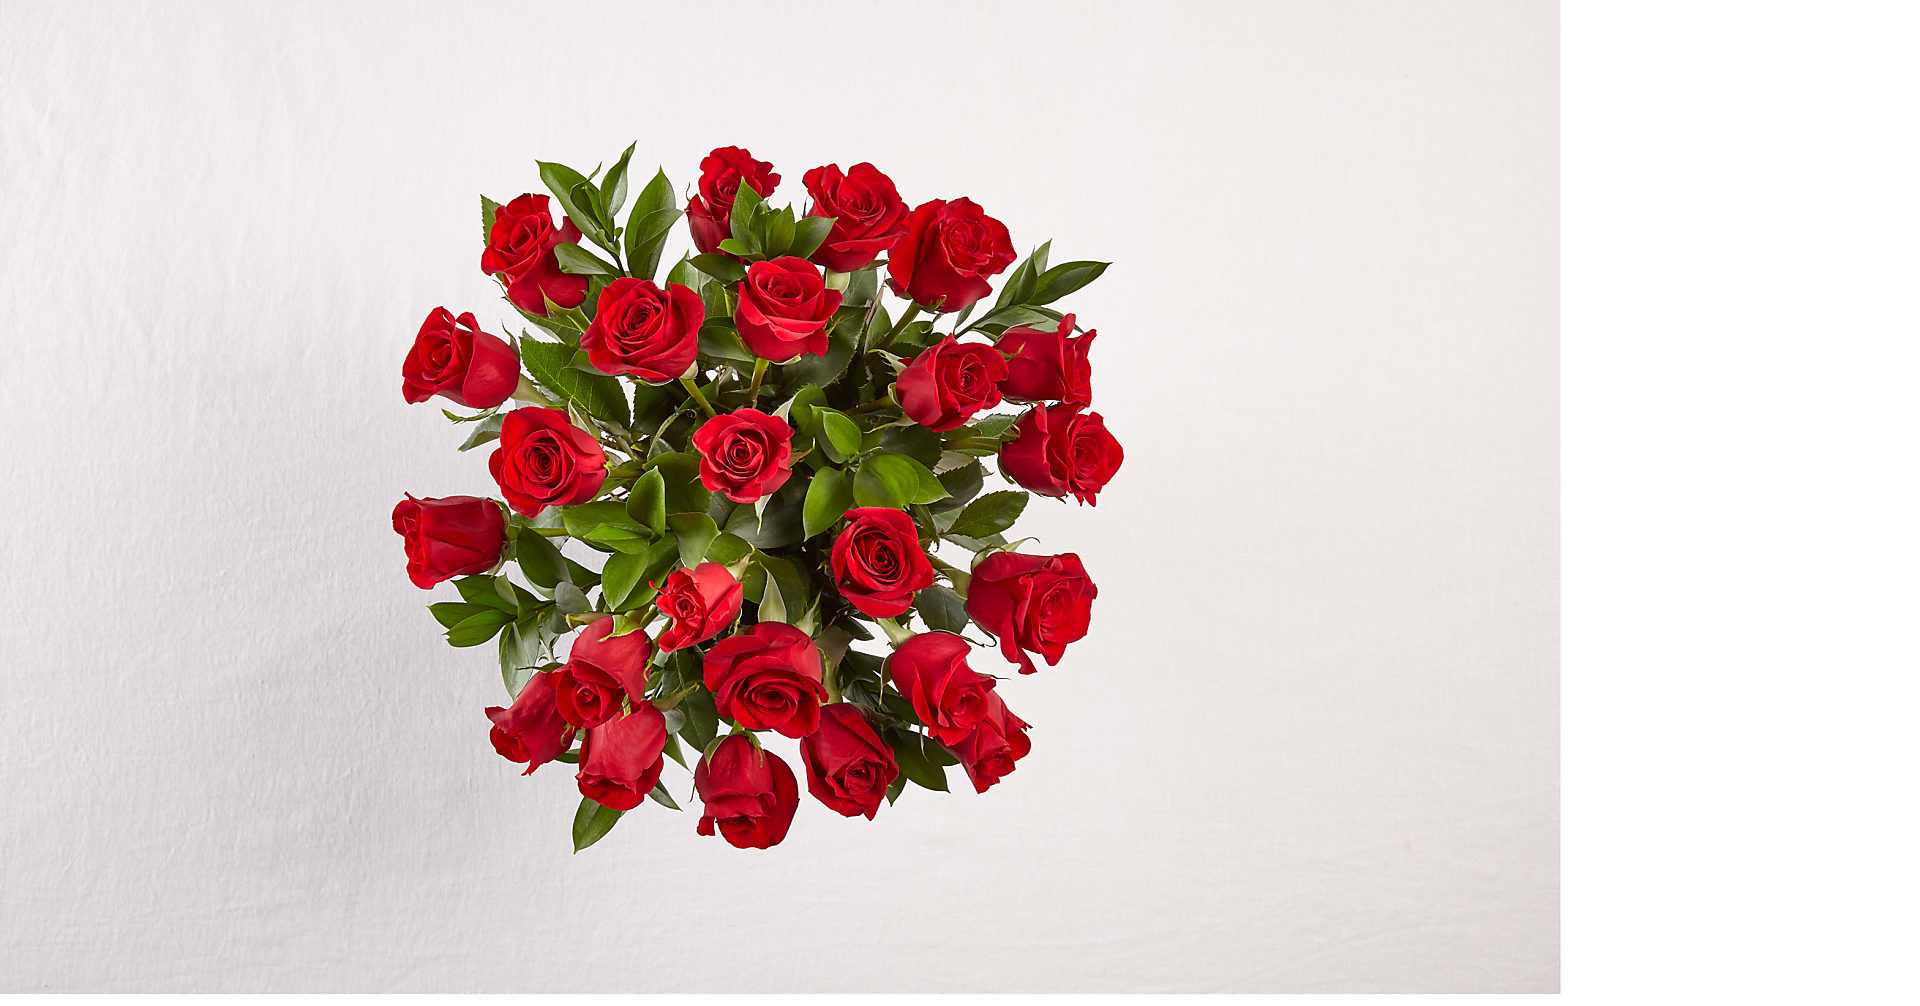 24 Red Roses no vase - Image 2 Of 2